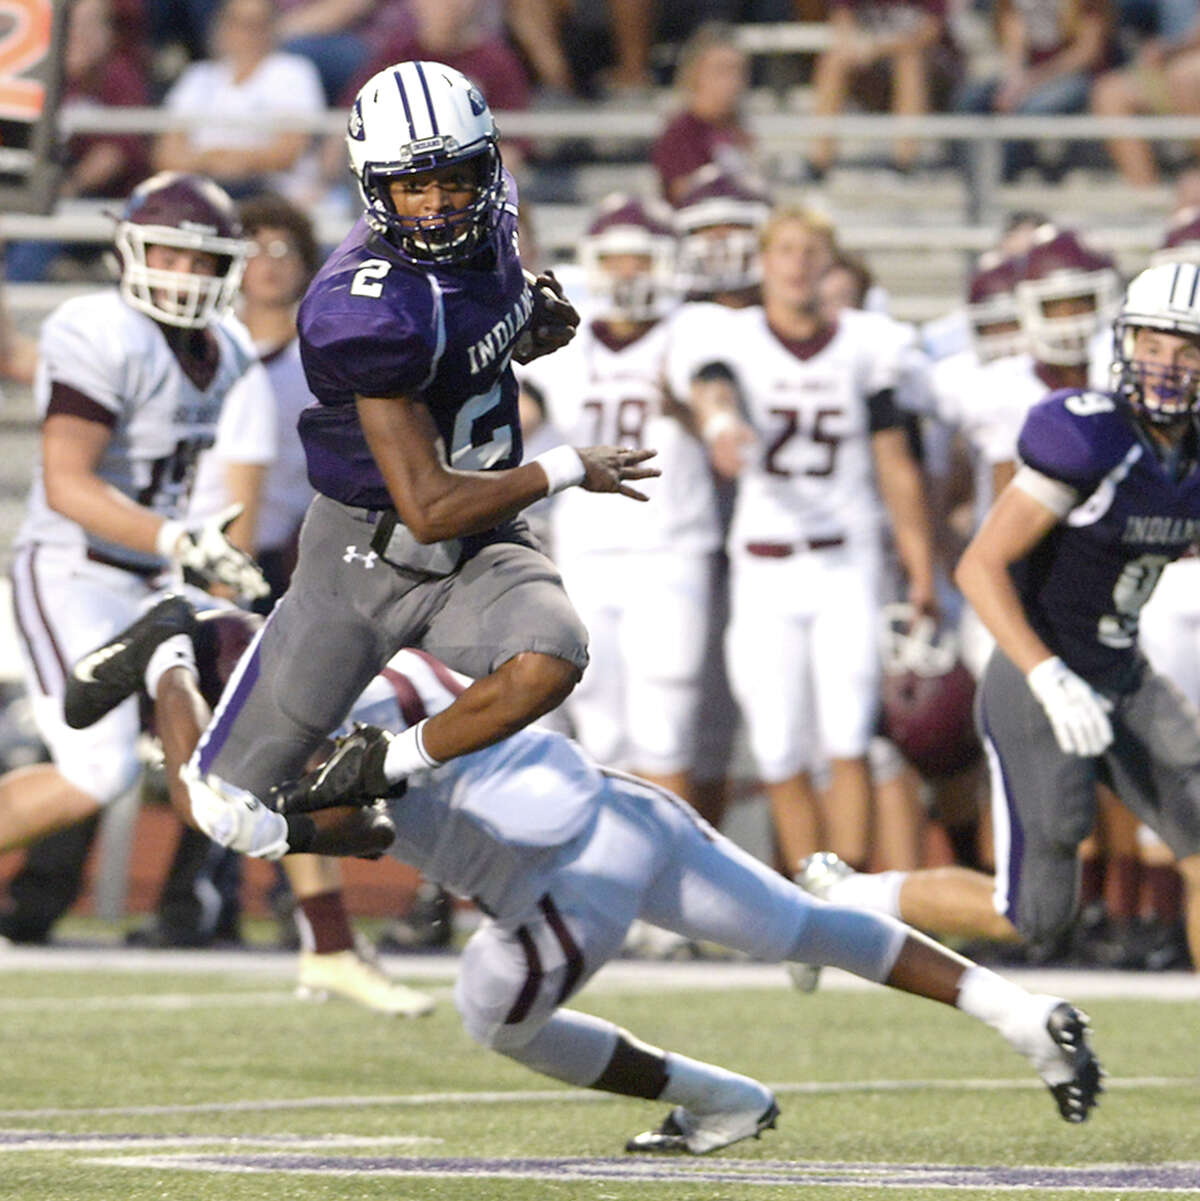 Port Neches - Groves' Roschon Johnson soars over top of Silsbee's defense as he brings the ball down to the end zone during Friday night's season opening game at PNG. Photo taken Friday, August 26, 2016 Kim Brent/The Enterprise